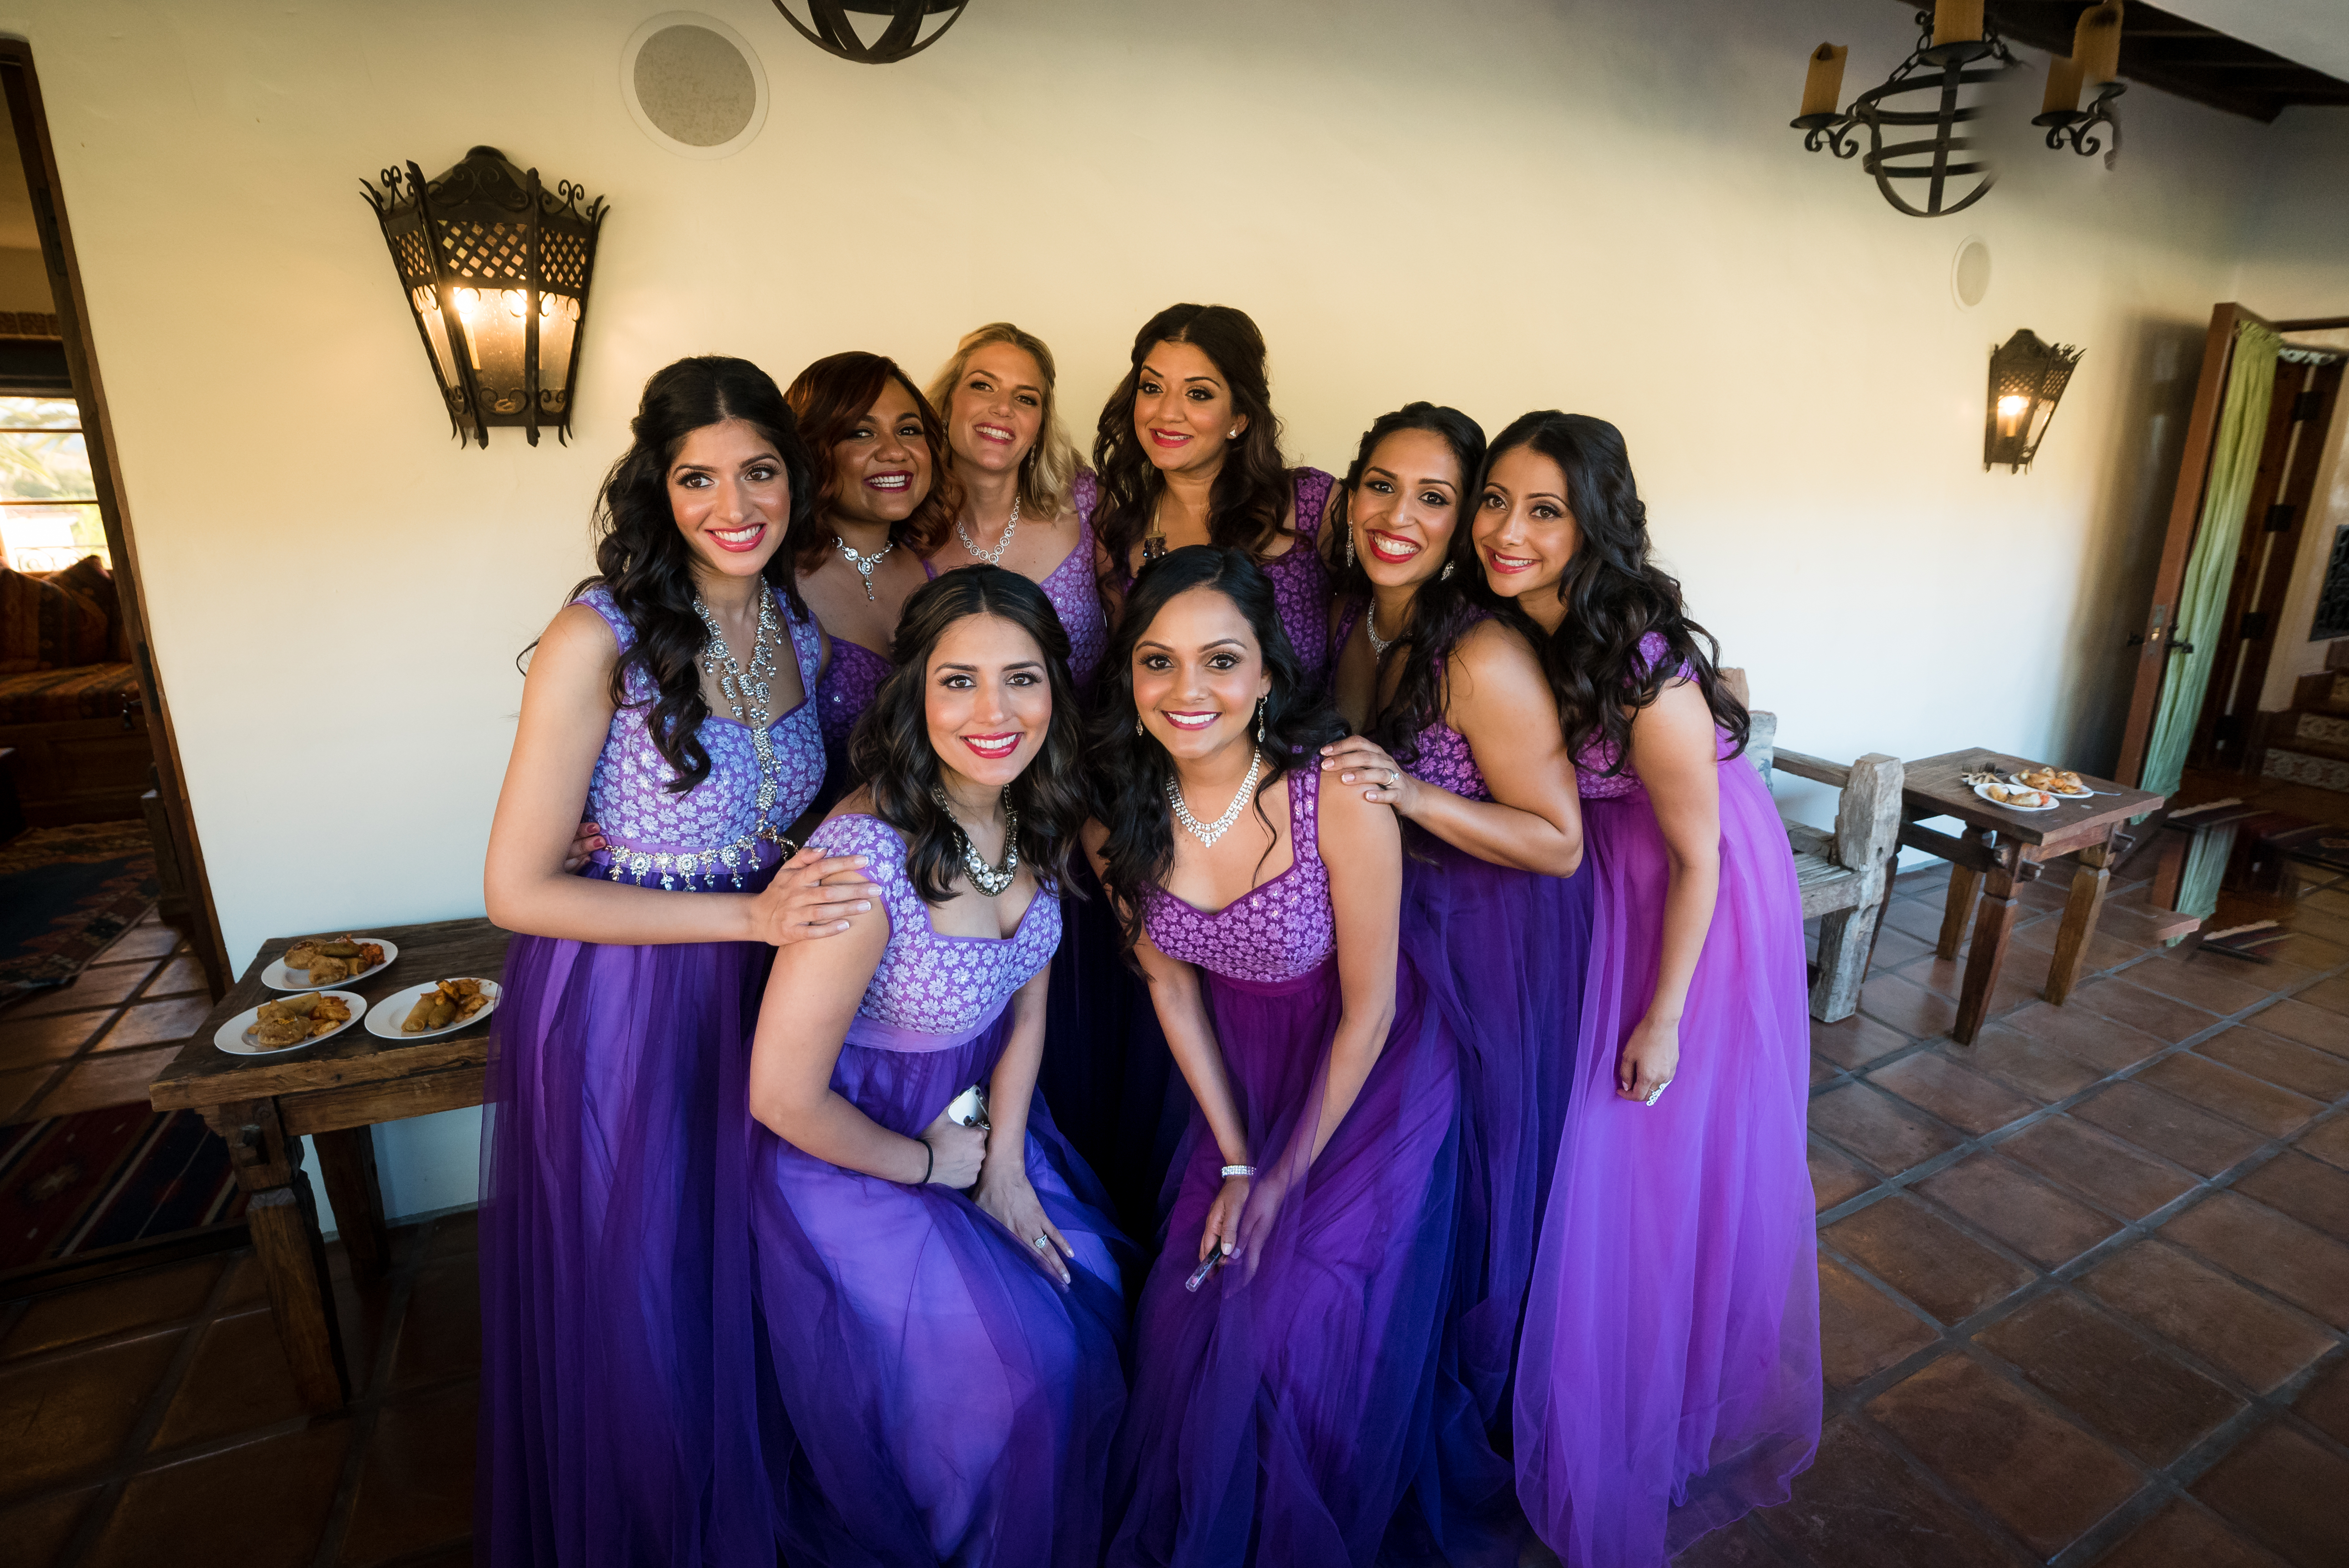 Bridesmaid dresses for indian christian wedding images